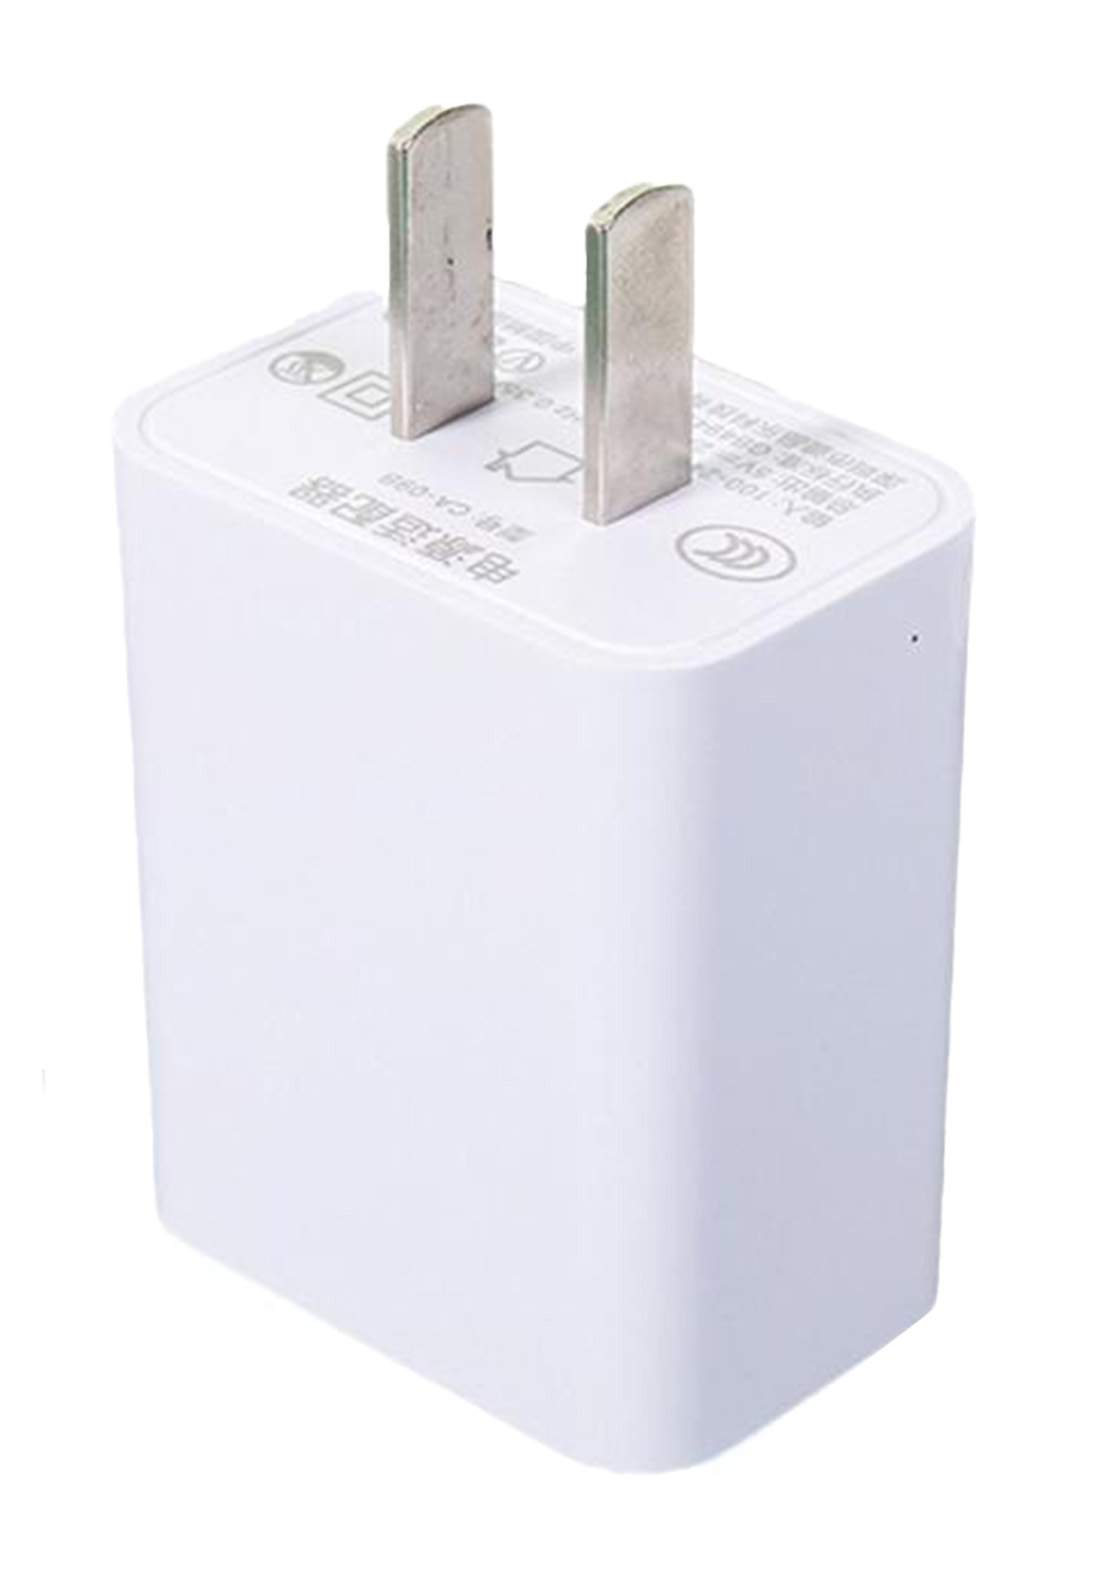 Charger 5volt and 2 Ampir - White  شاحنة